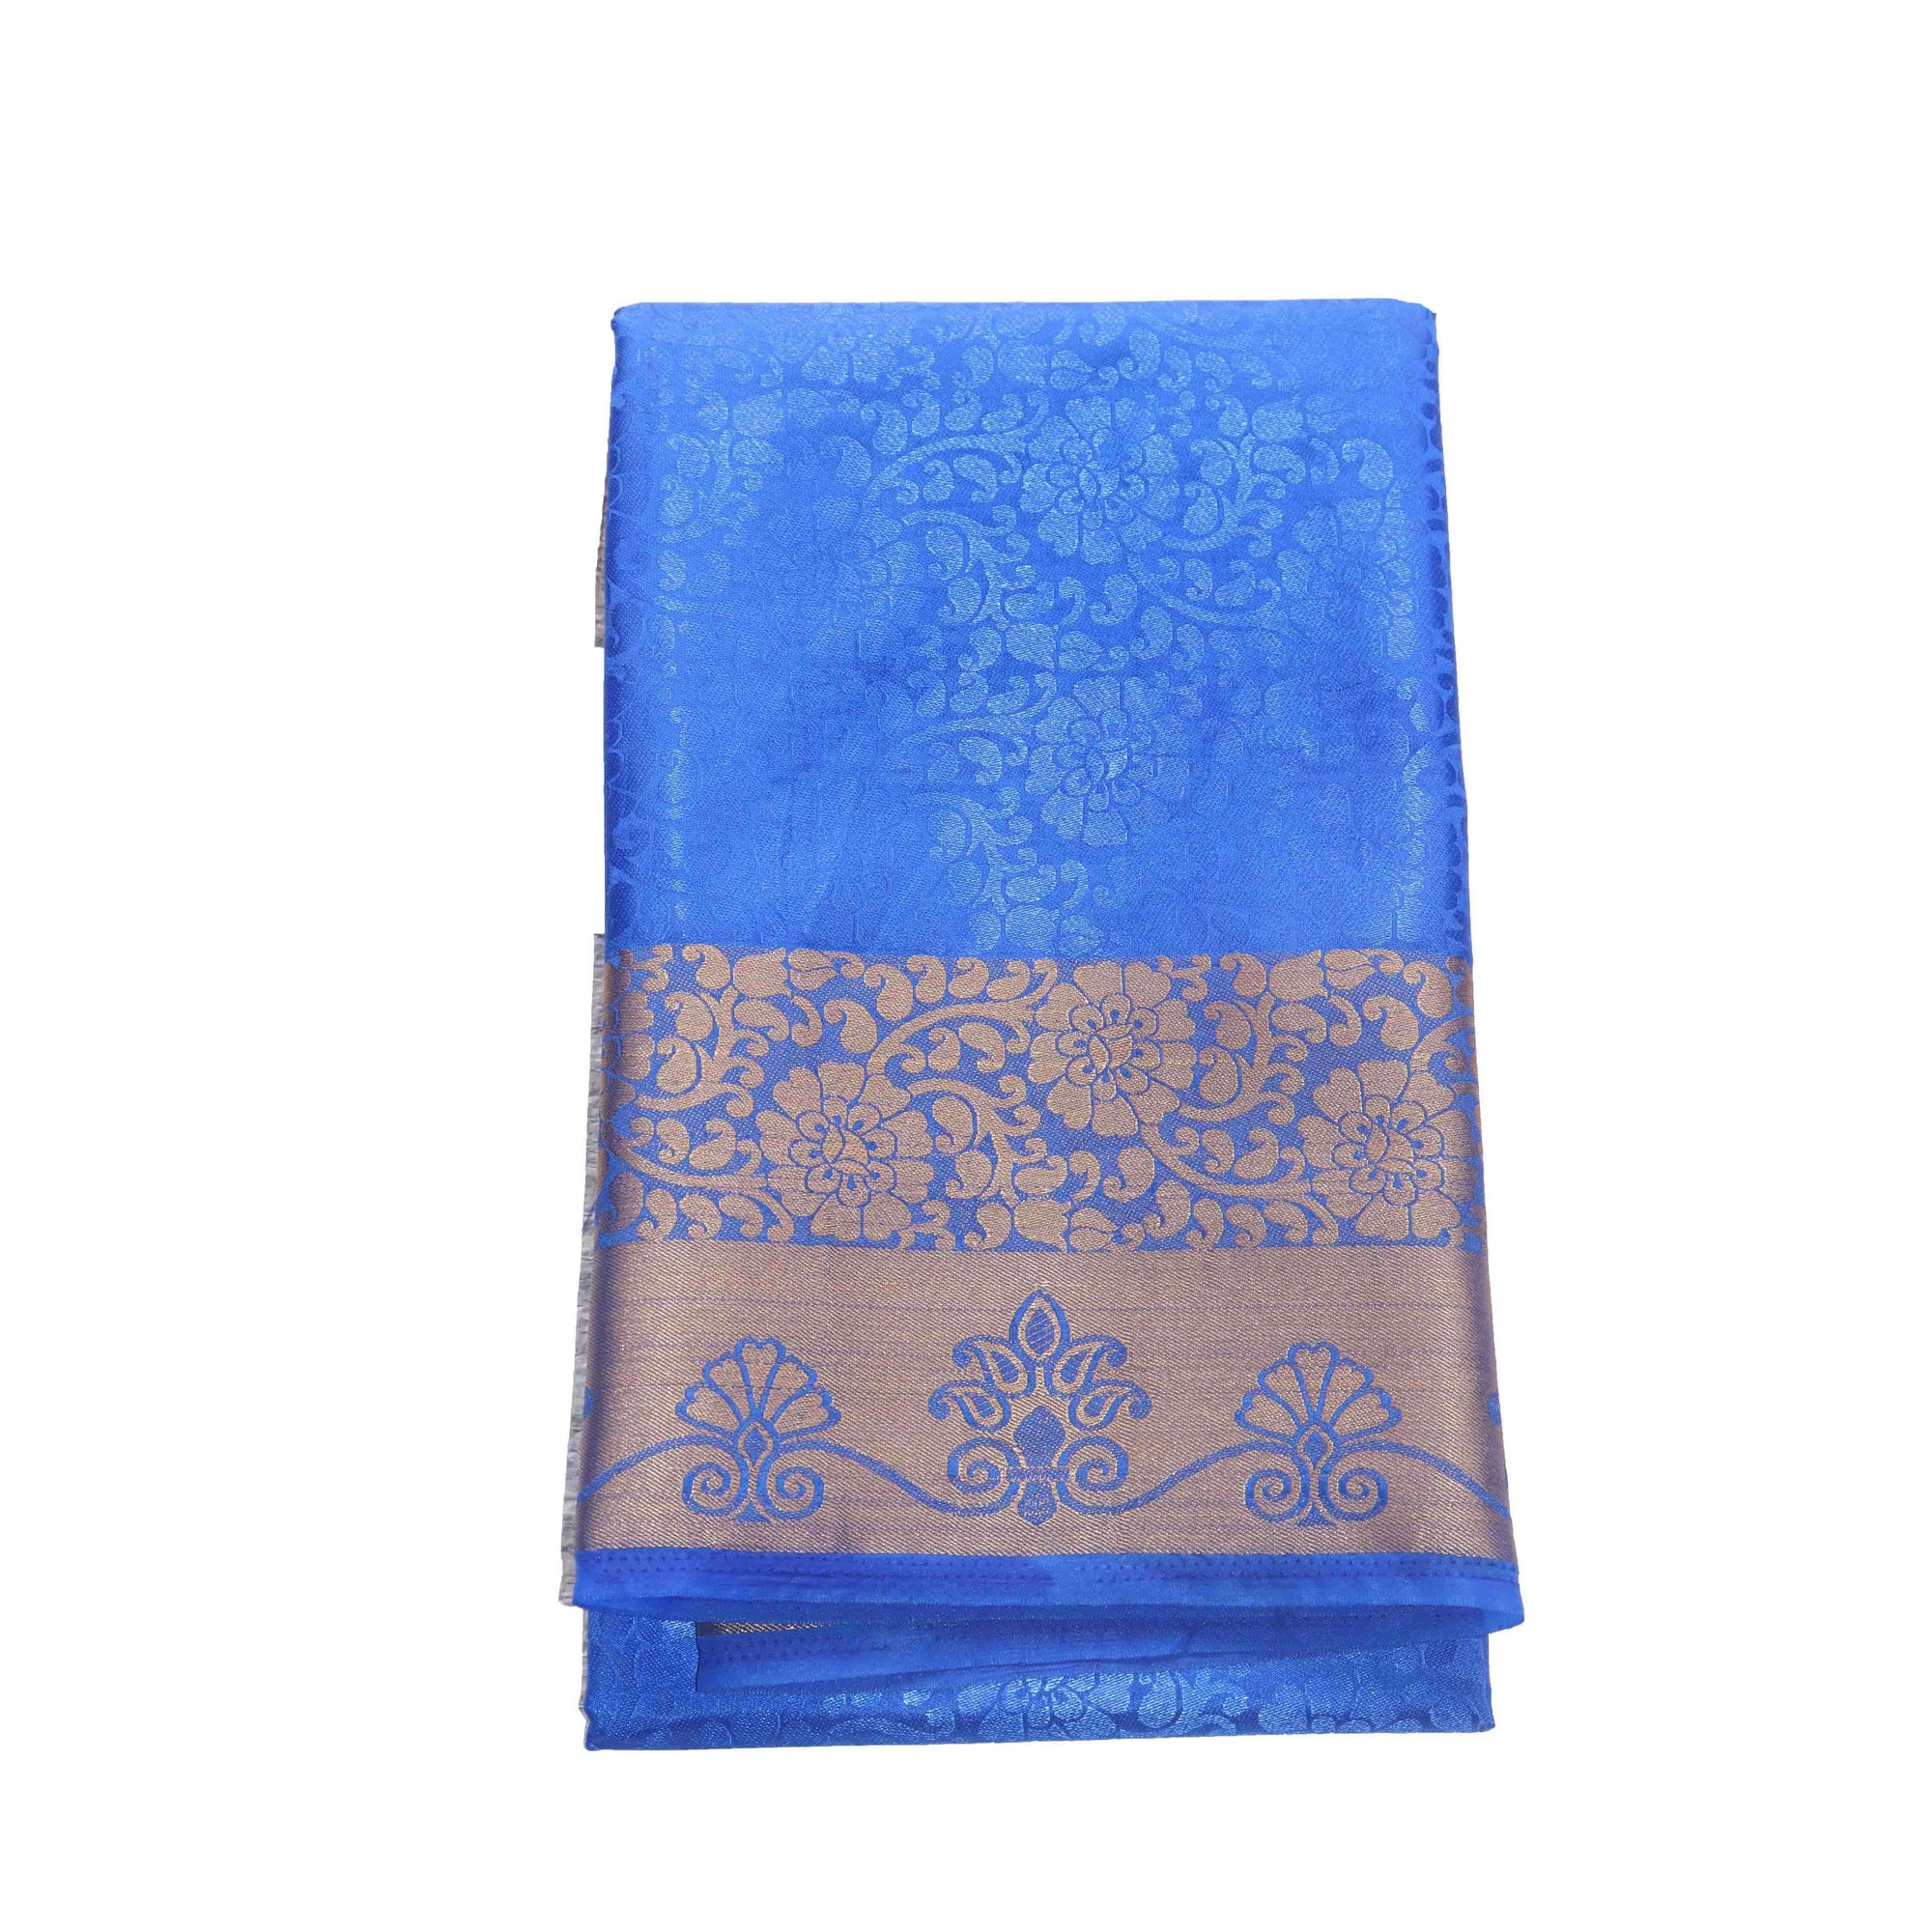 Arars Women's Kanchipuram Kanjivaram Pattu Style Balaton Embosed Plain Silk Saree With Blouse (456 ROYAL )